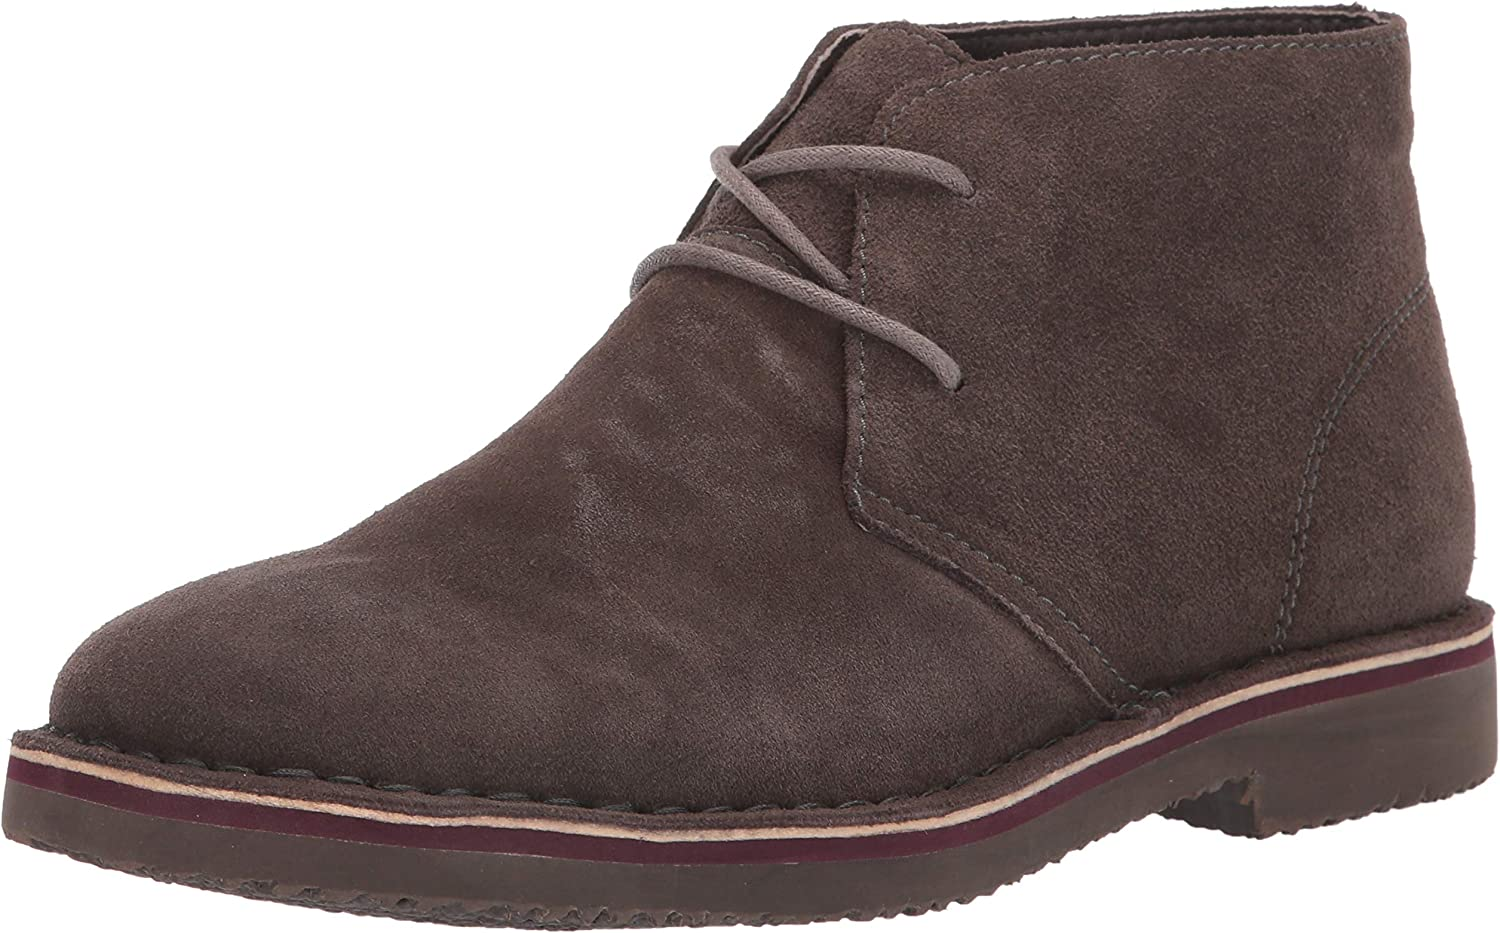 OFFicial Clearance SALE! Limited time! shop Propet Men's Findley Oxford